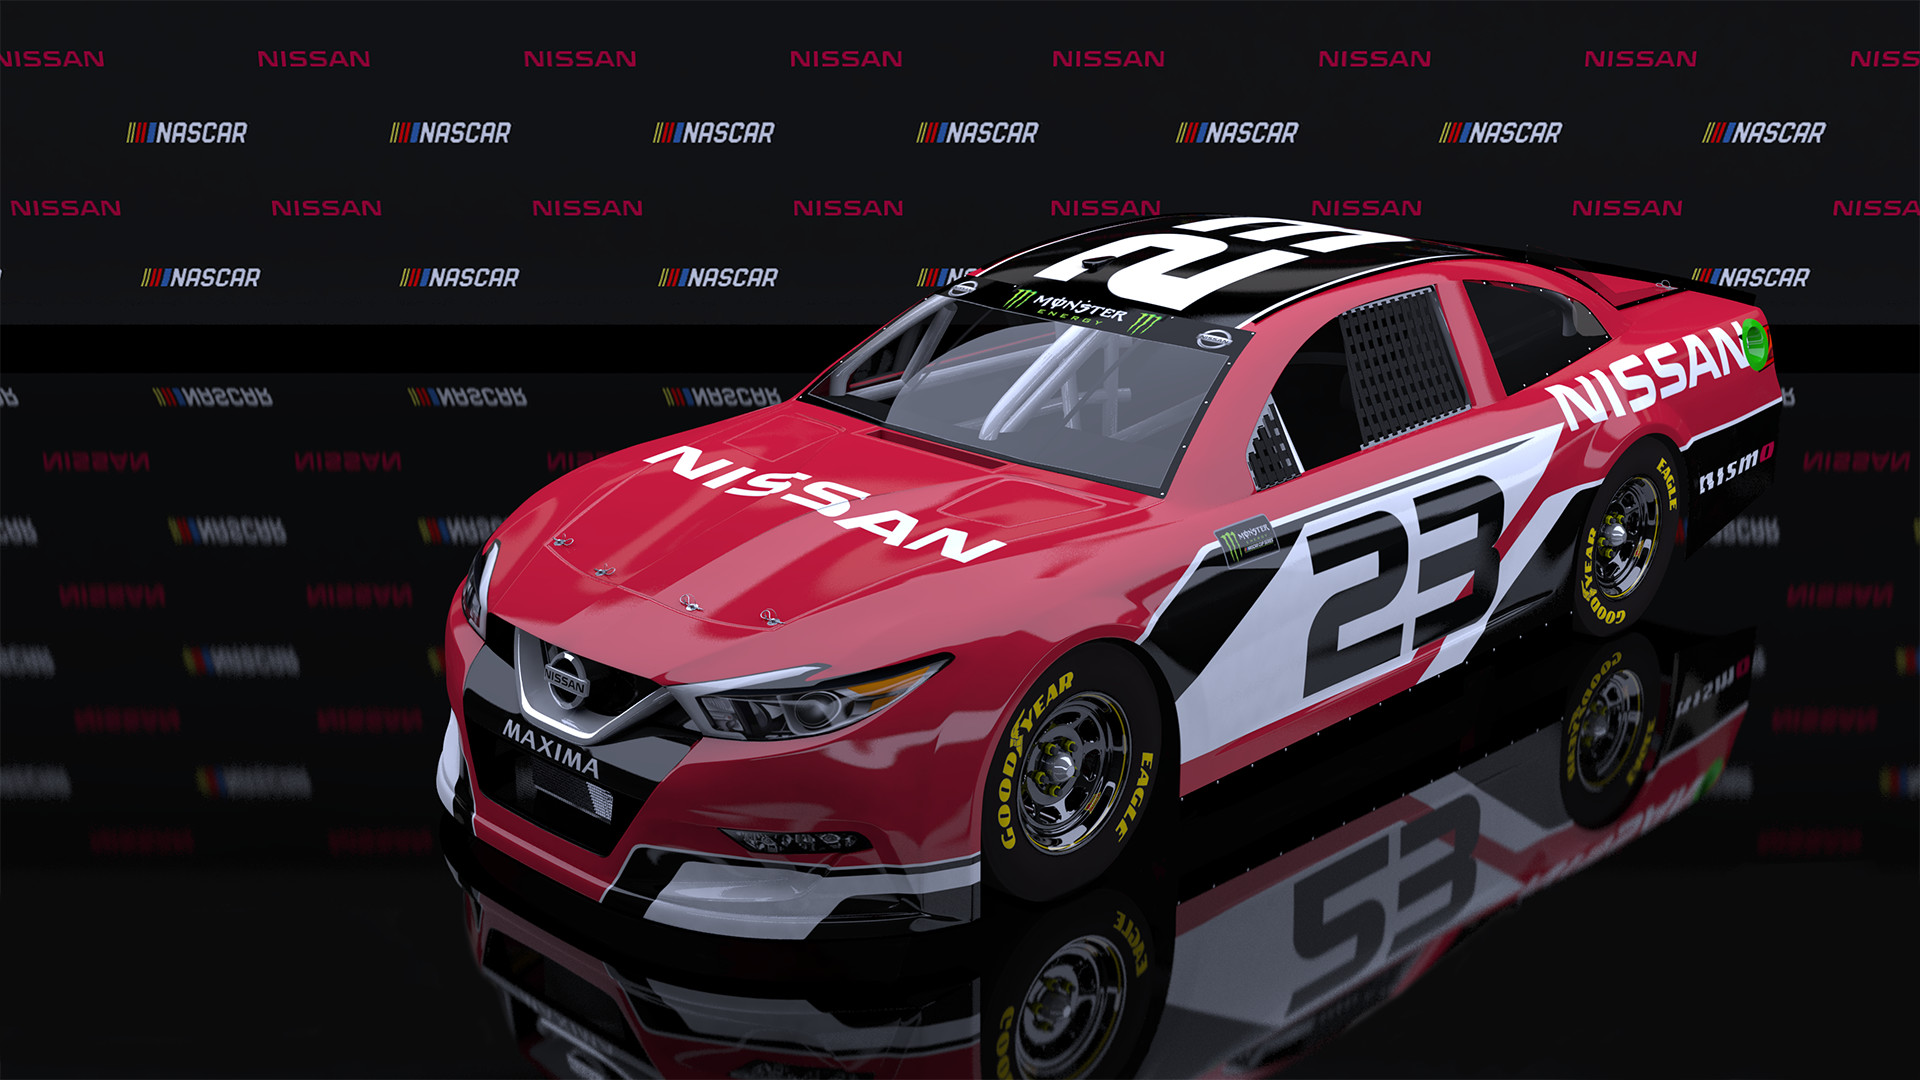 I Was Looking At Pictures Of Fantasy Manufacturers For Nascar And Love This Nissan Design